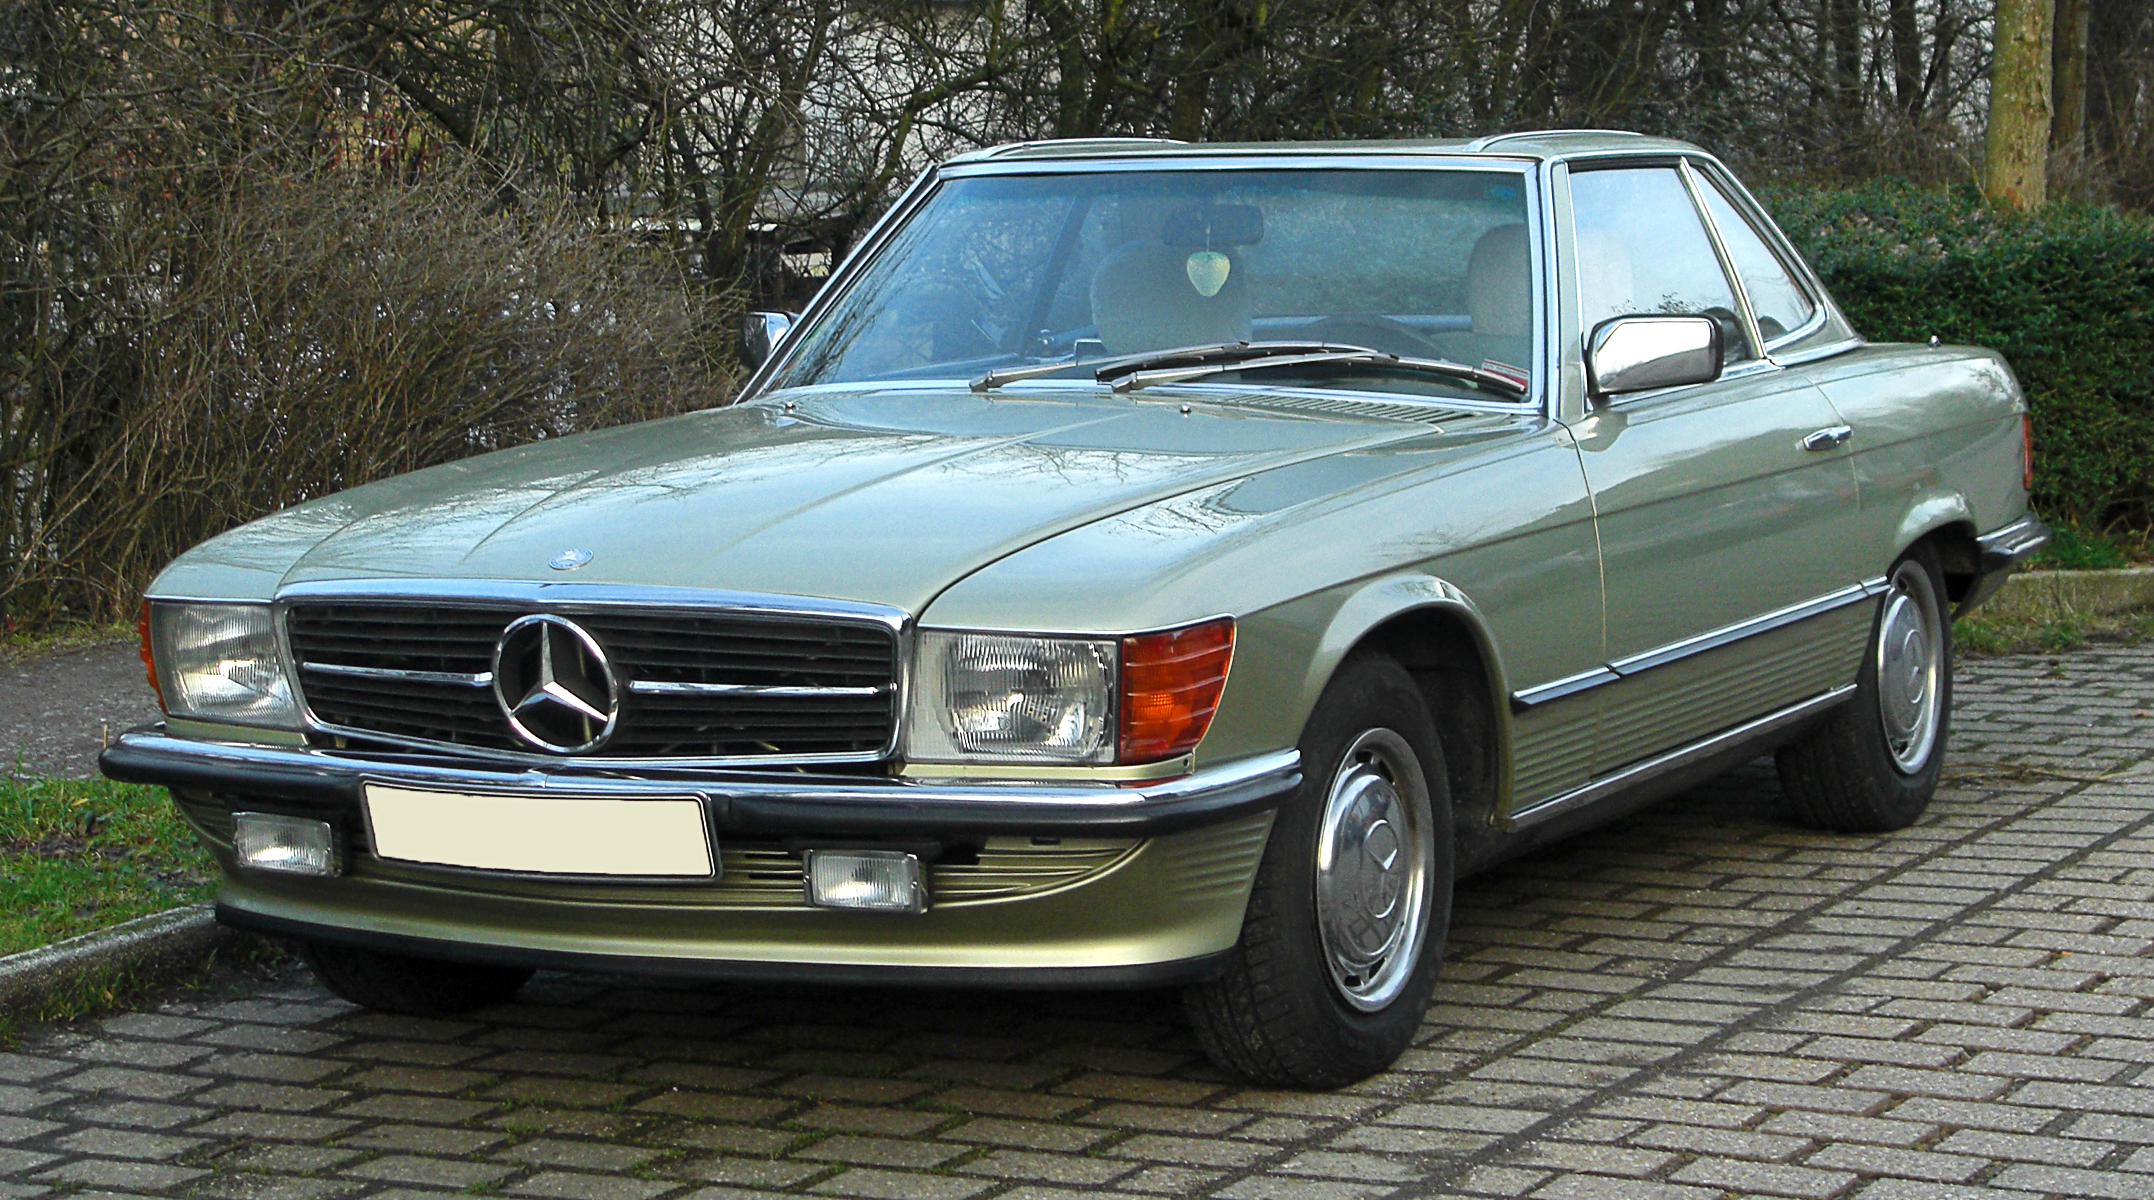 file mercedes benz 280 sl r 107 frontansicht 13 februar 2011 w wikimedia commons. Black Bedroom Furniture Sets. Home Design Ideas